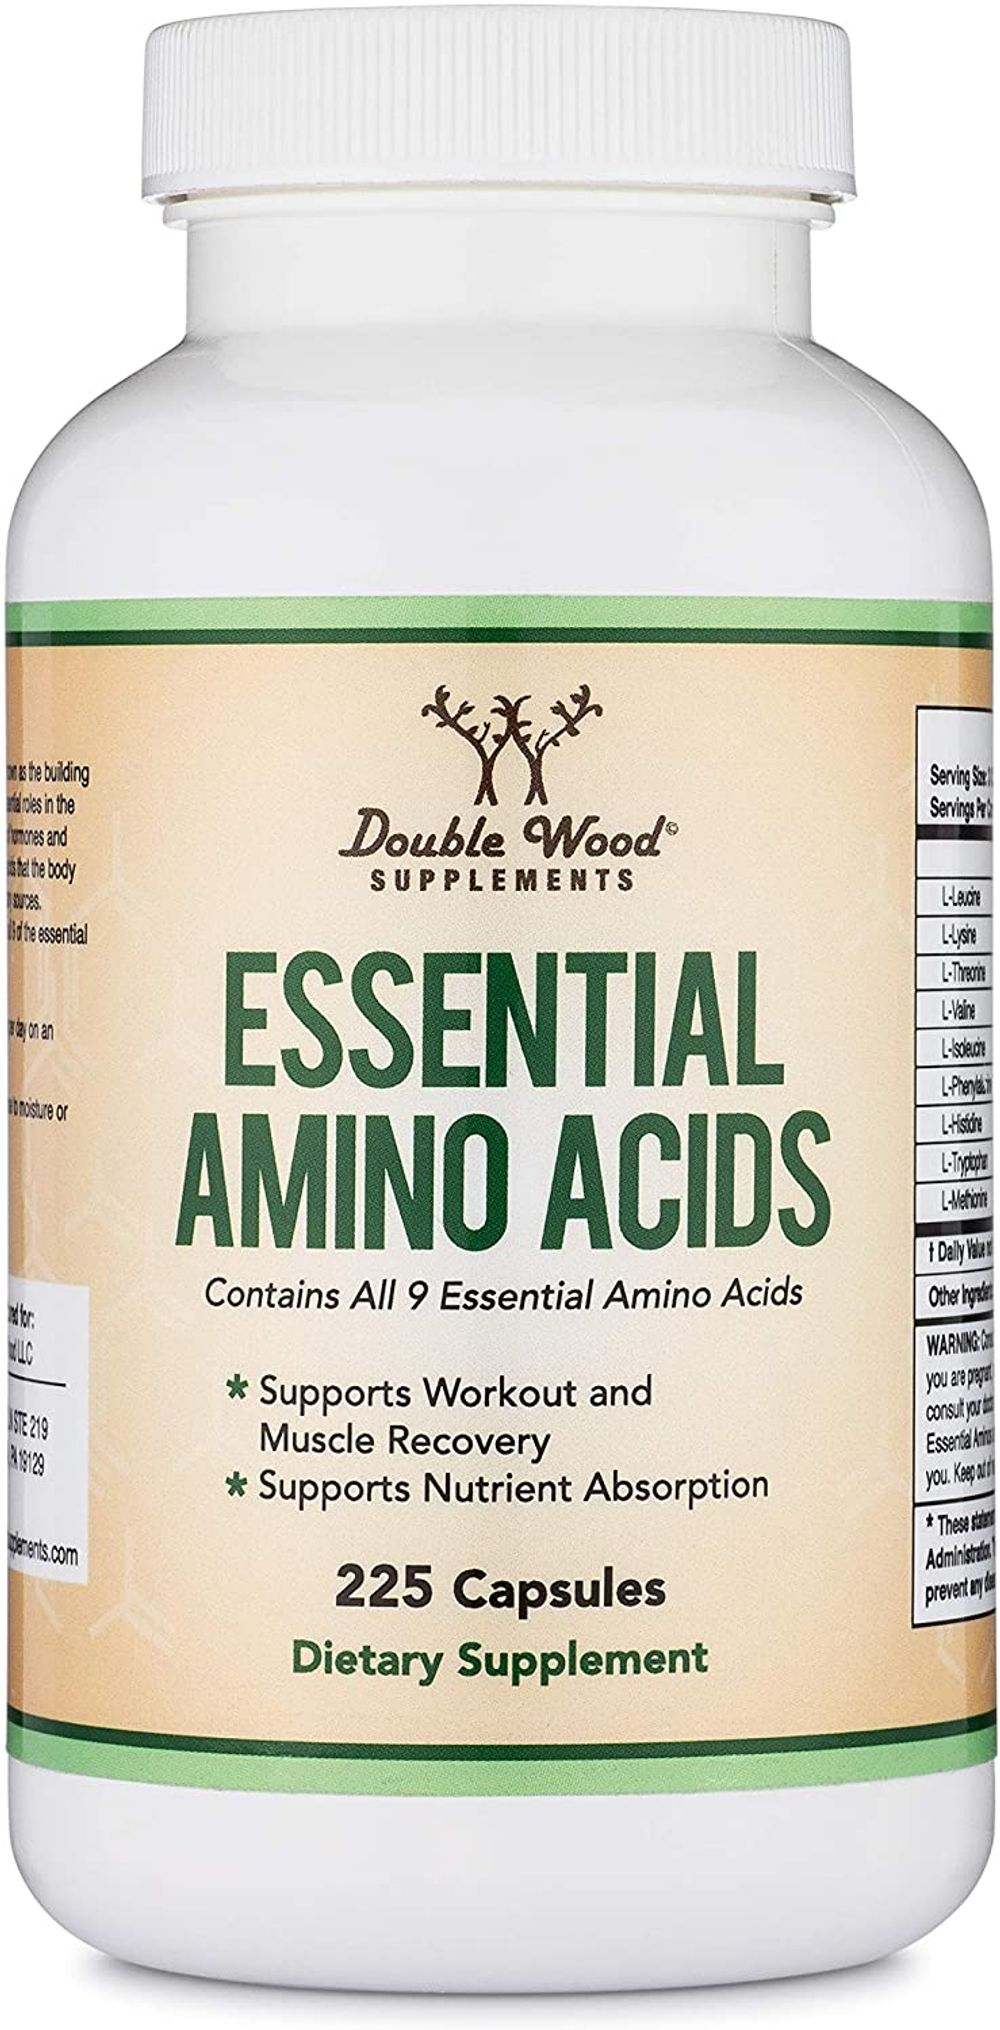 Essential Amino Acids - 1 Gram Per Serving Powder Blend of All 9 Essential Aminos (EAA) and all Branched-Chain Aminos (BCAAs) (Leucine, Isoleucine, Valine) 225 Capsules by Double Wood Supplements